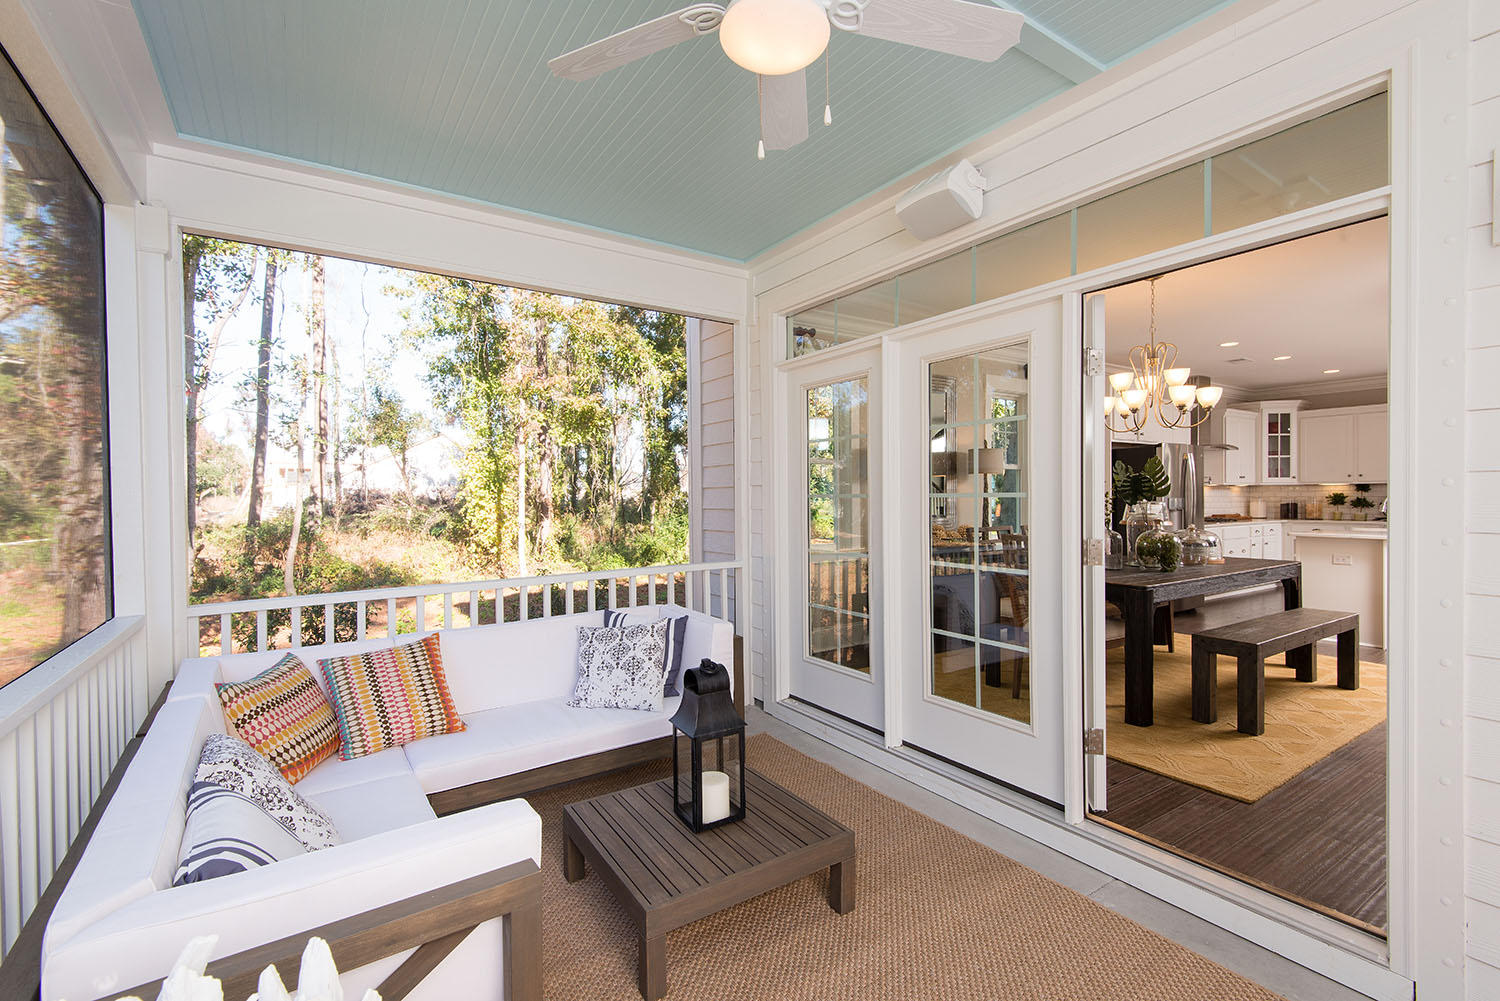 The Village at Stiles Point Homes For Sale - 869 Shutes Folly, Charleston, SC - 0